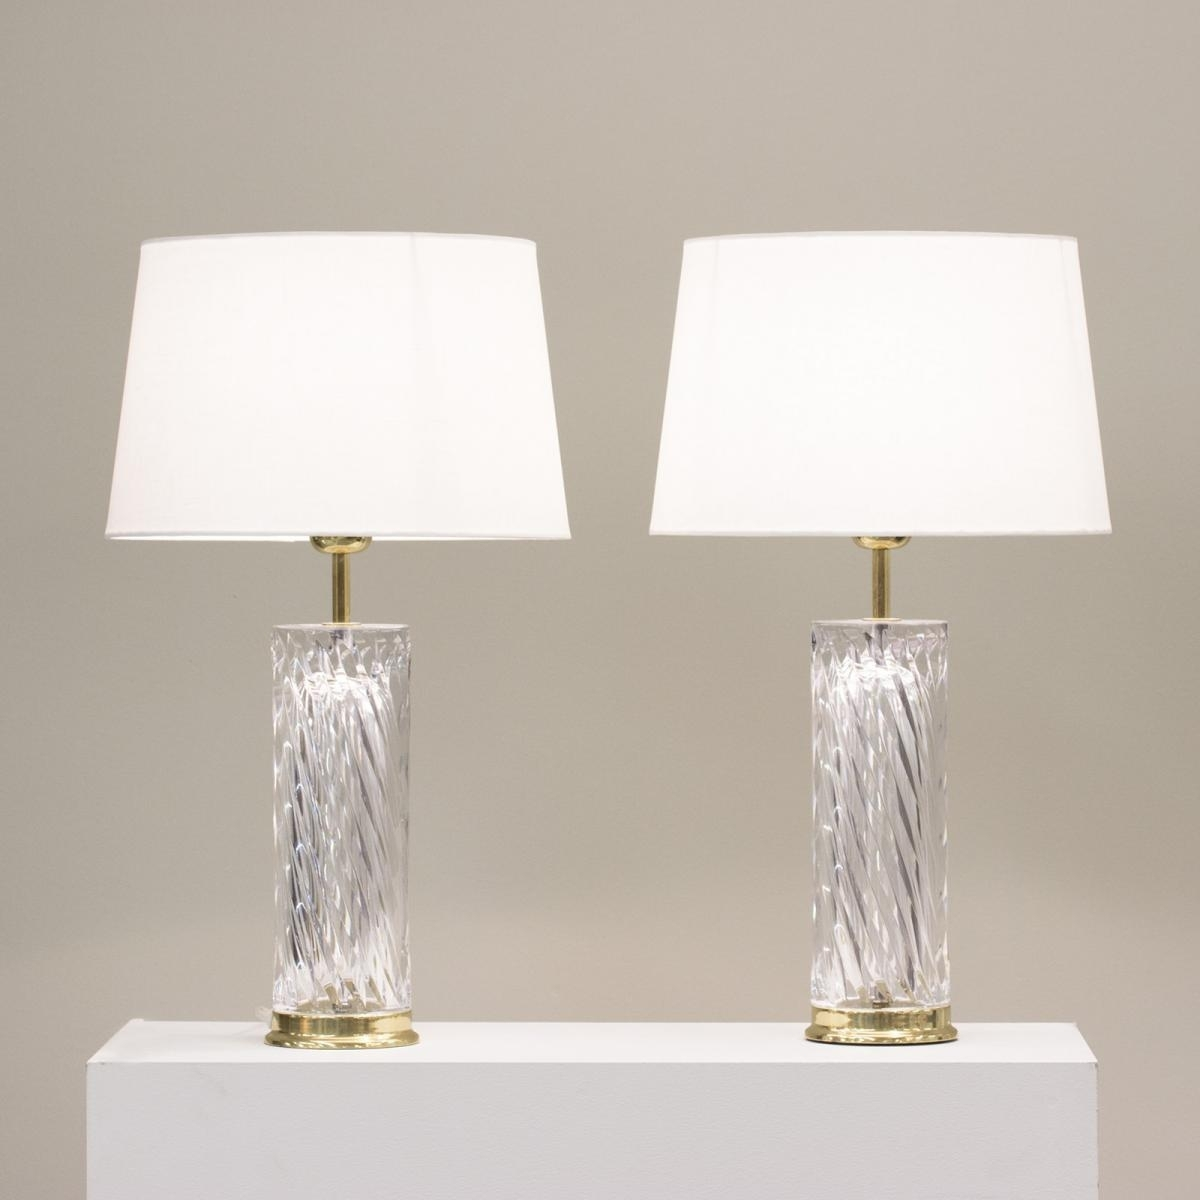 Inspiration about Top 58 Superb Tall Crystal Table Lamps Floor Lamp On Sale For Living With Regard To Crystal Living Room Table Lamps (#3 of 15)